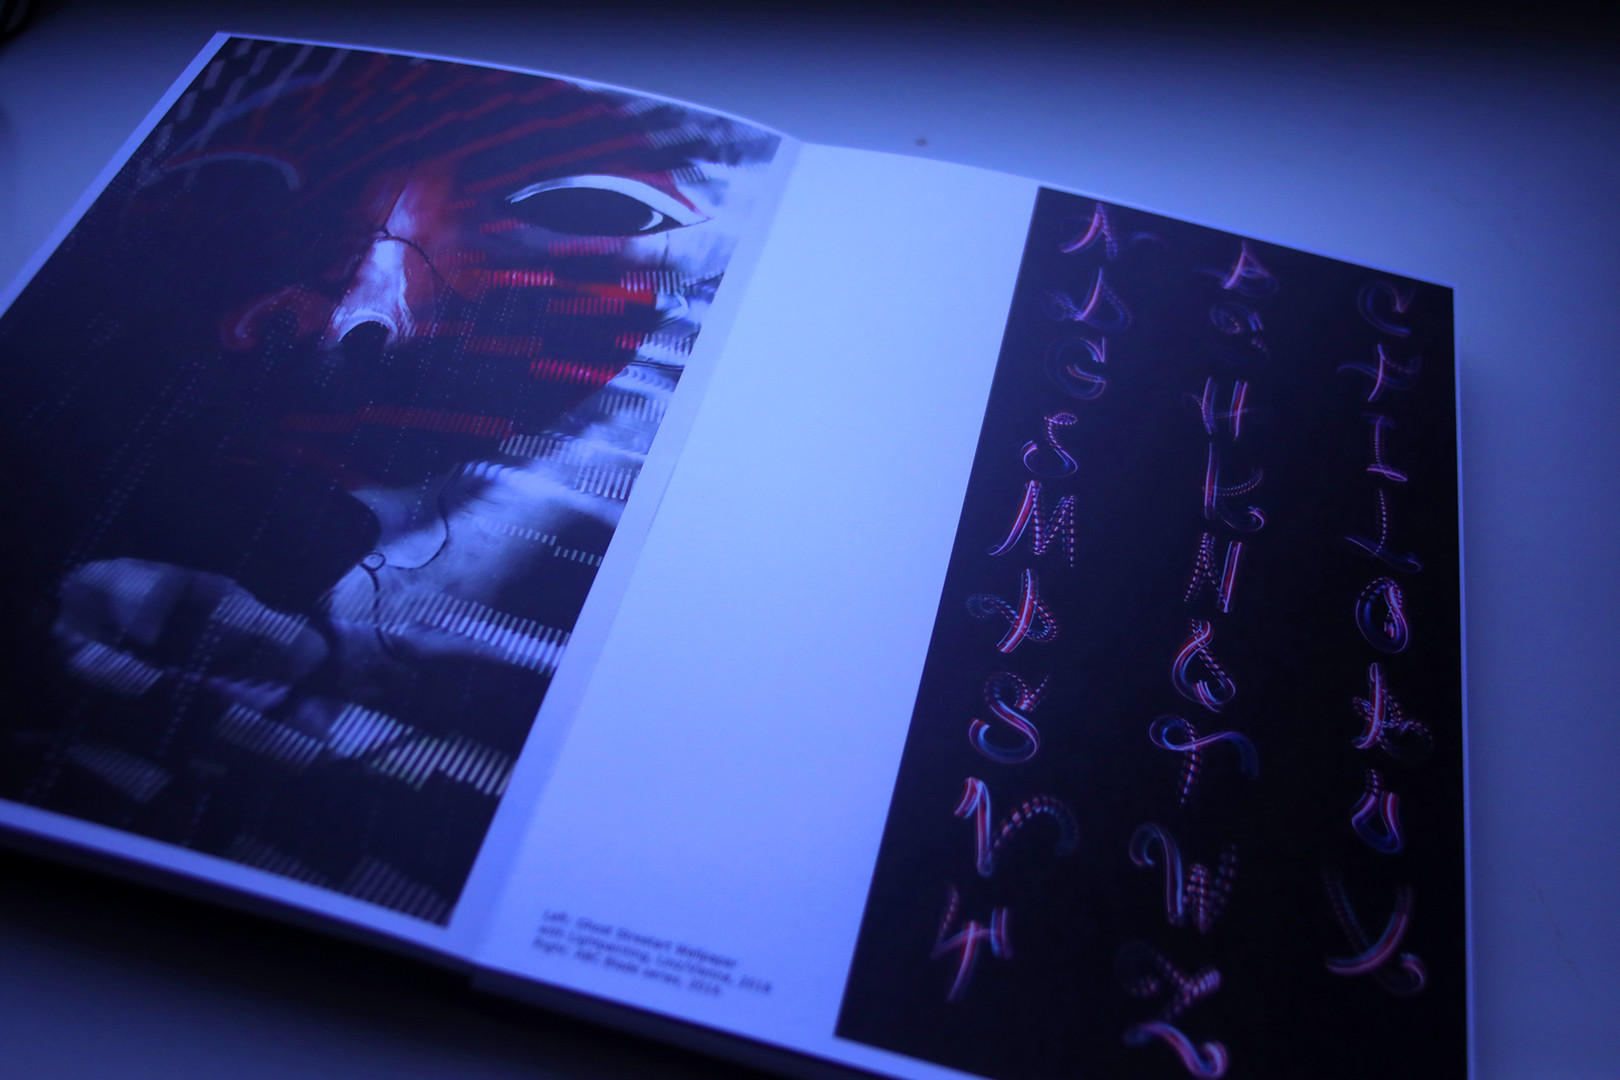 Book-Preview-04.jpg